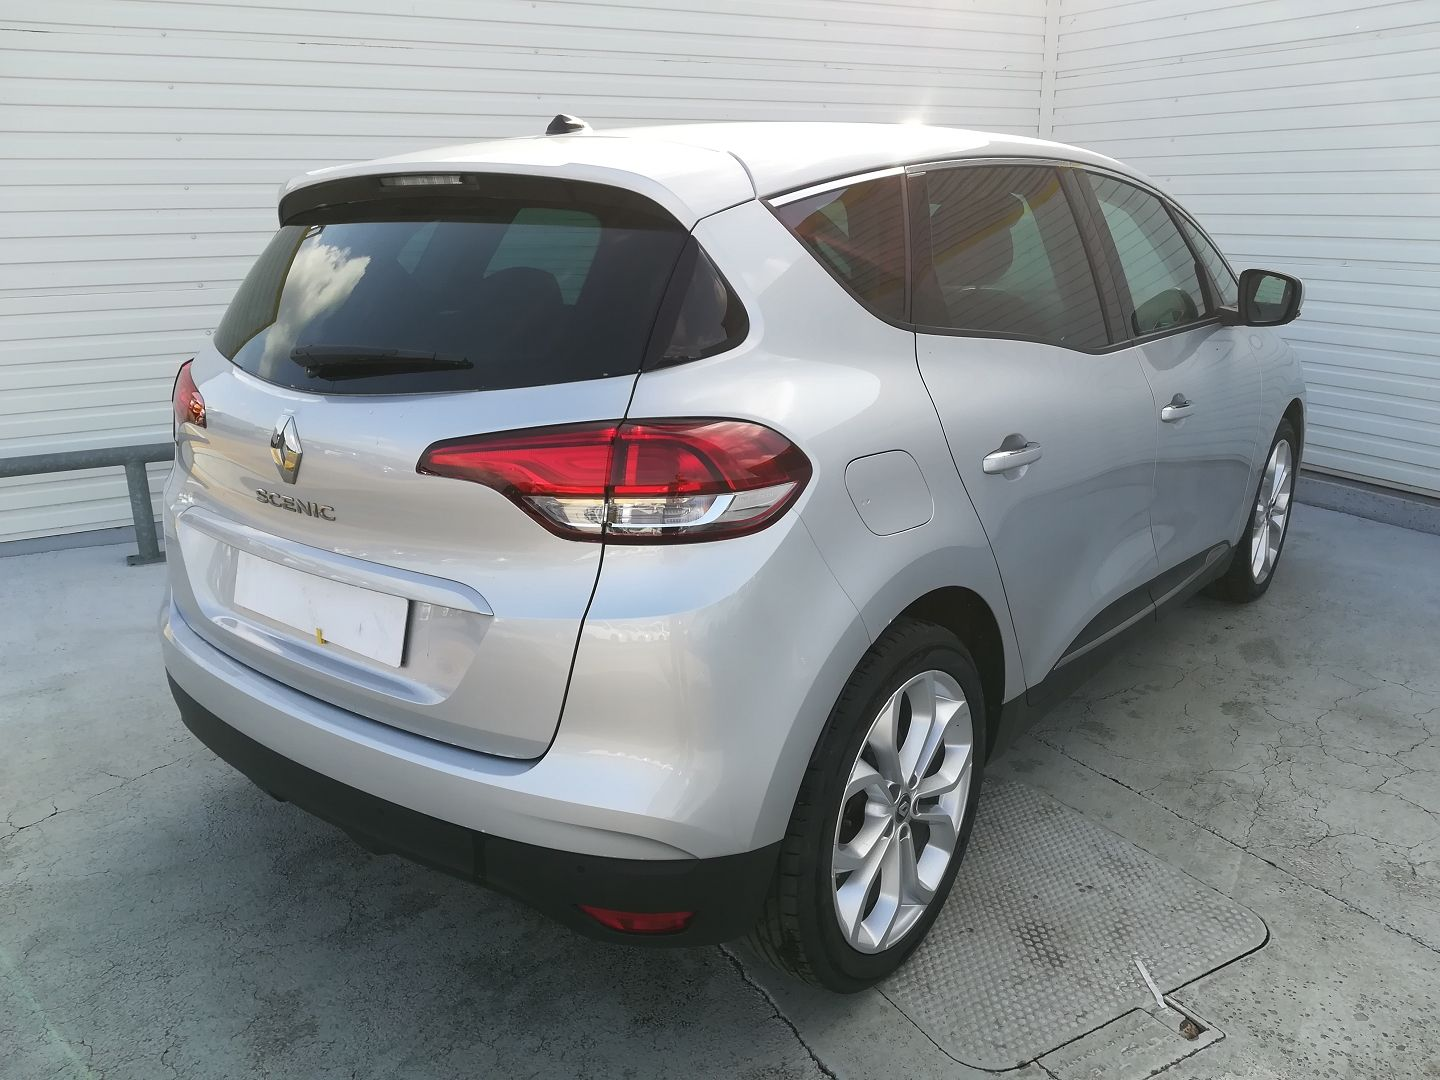 RENAULT SCENIC IV 1.7 BLUE DCI 120CH BUSINESS